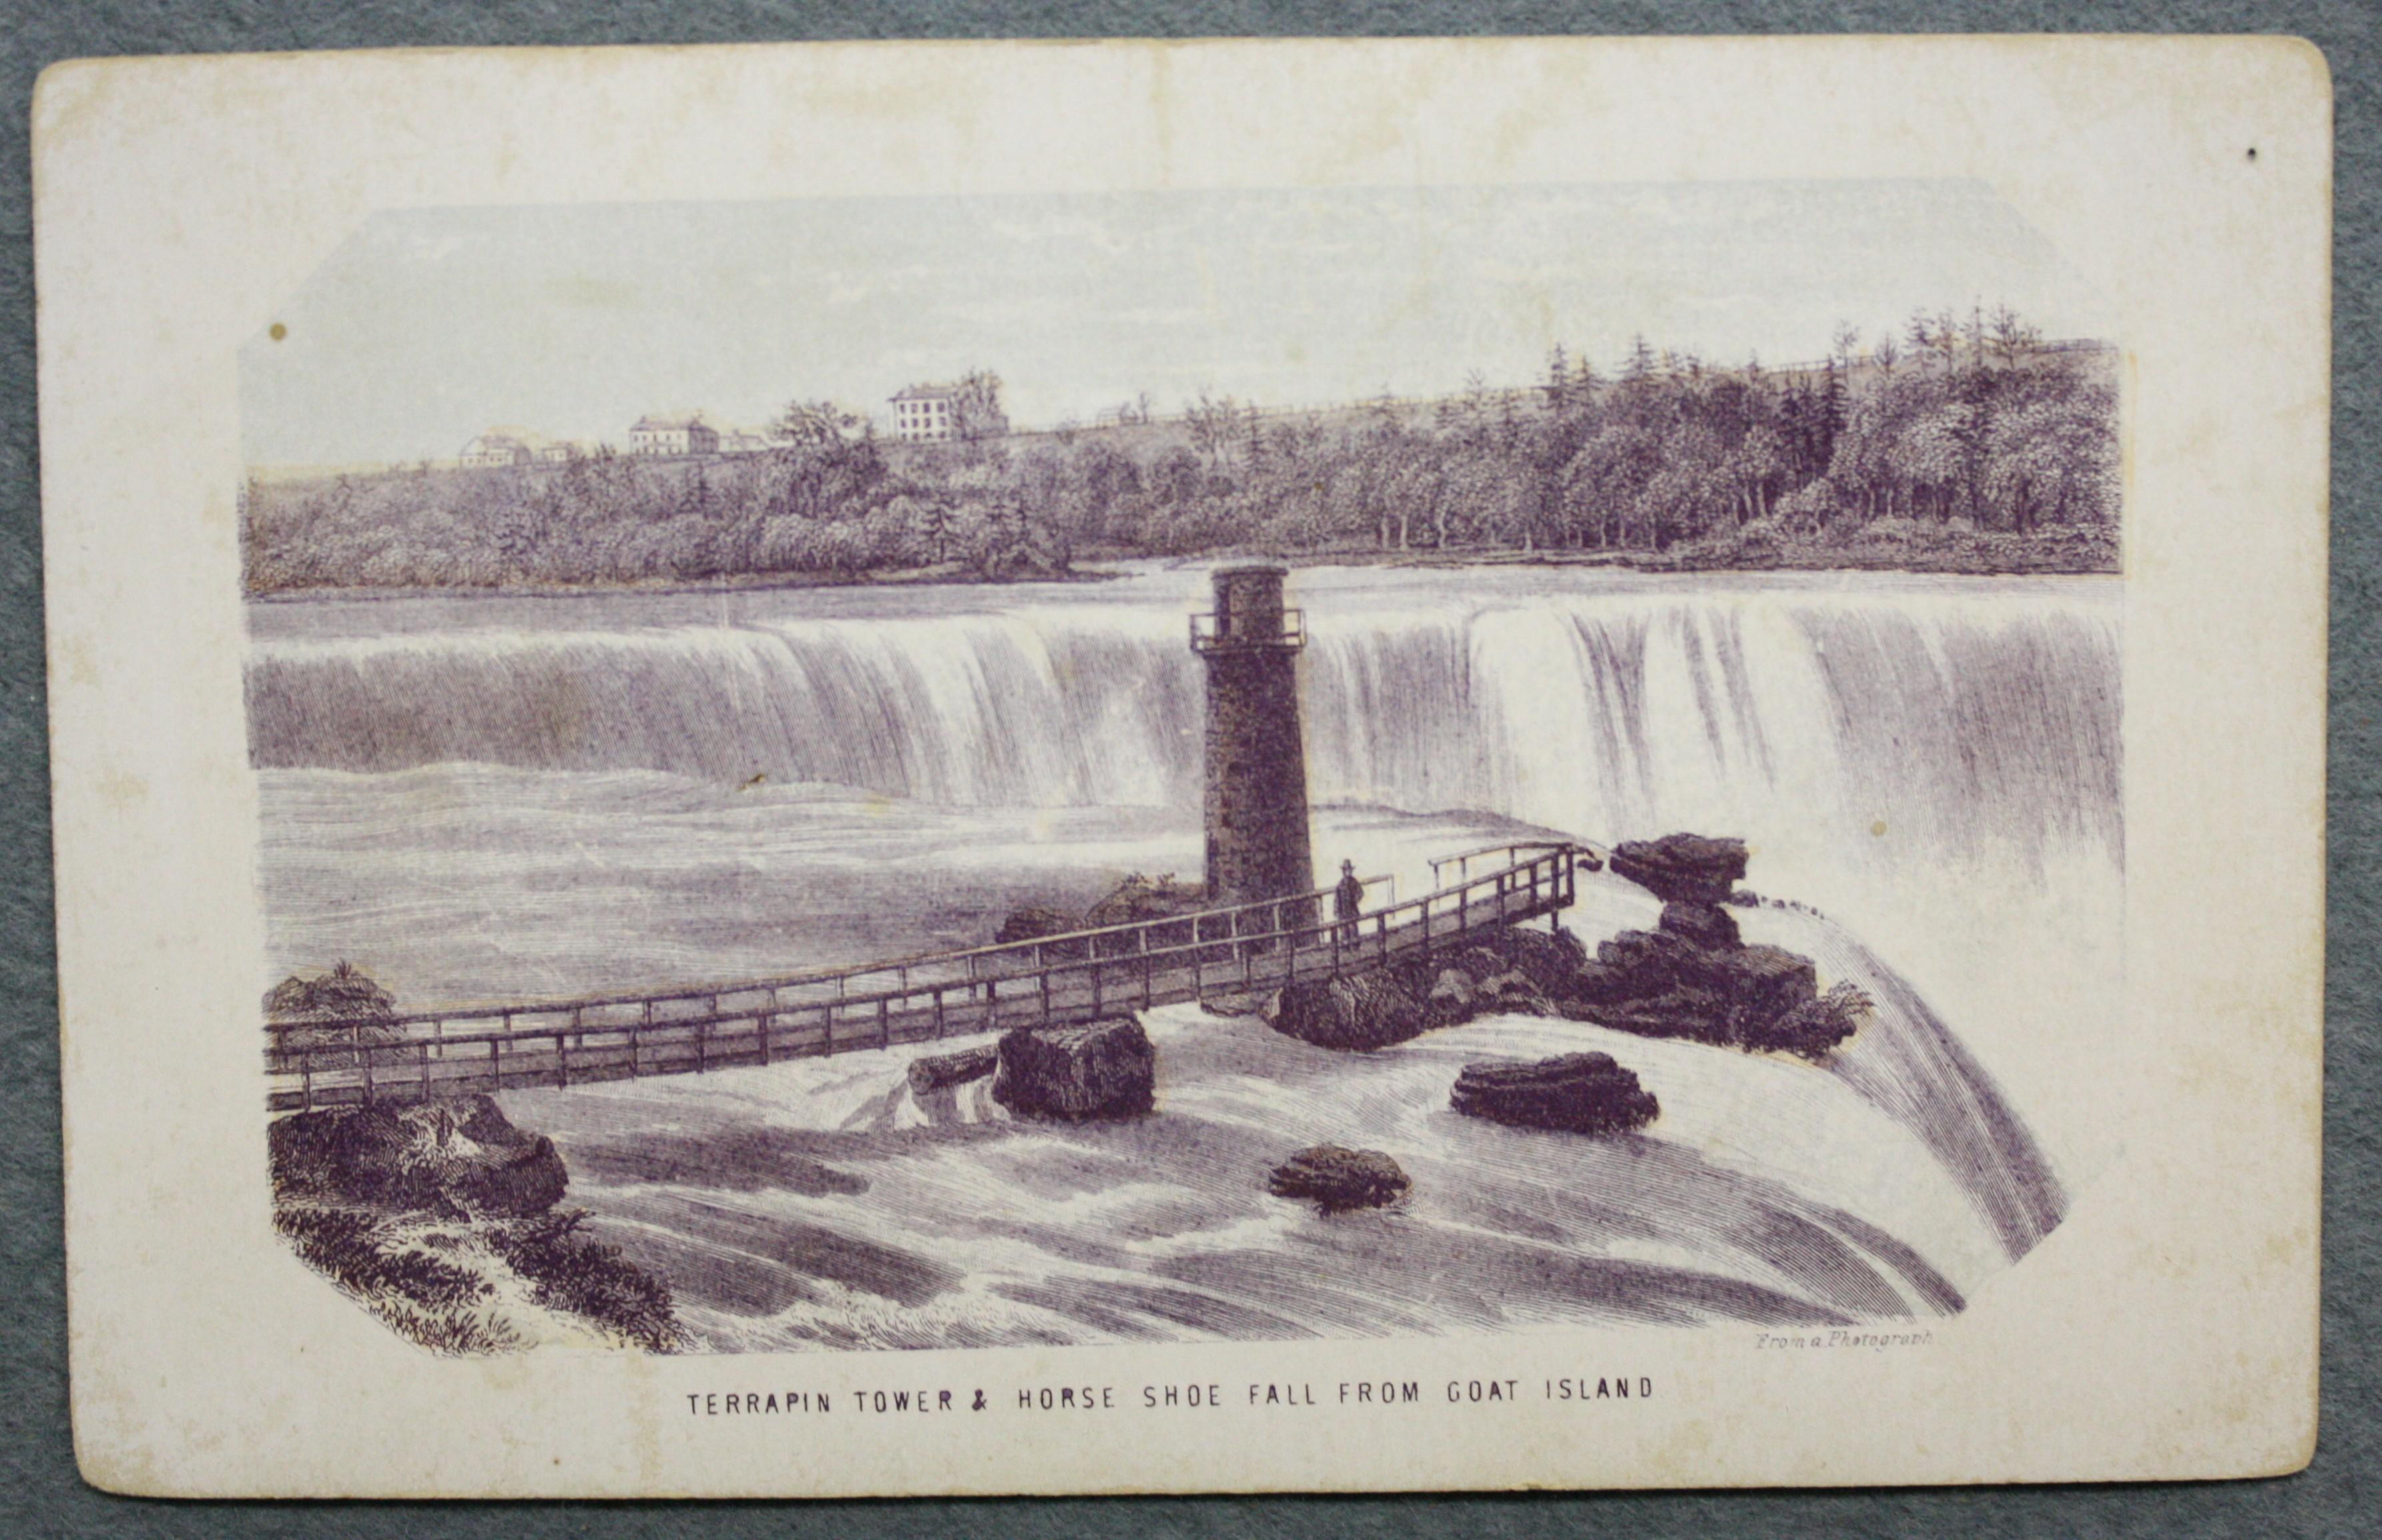 Terrapin Tower Horse Shoe Falls From Goat Island. Engraving of the Terrapin Tower and Bridge which allowed a close view from the US side of the Horseshoe Falls. A man stands next to the tower. The bridge starts at the left of the image and moves to the centre where the tower and man are. The tower has a walk-way around the top of it with a railing. On the oppposite shore are structures which are further South and  would include Loretto Academy or Canada House.